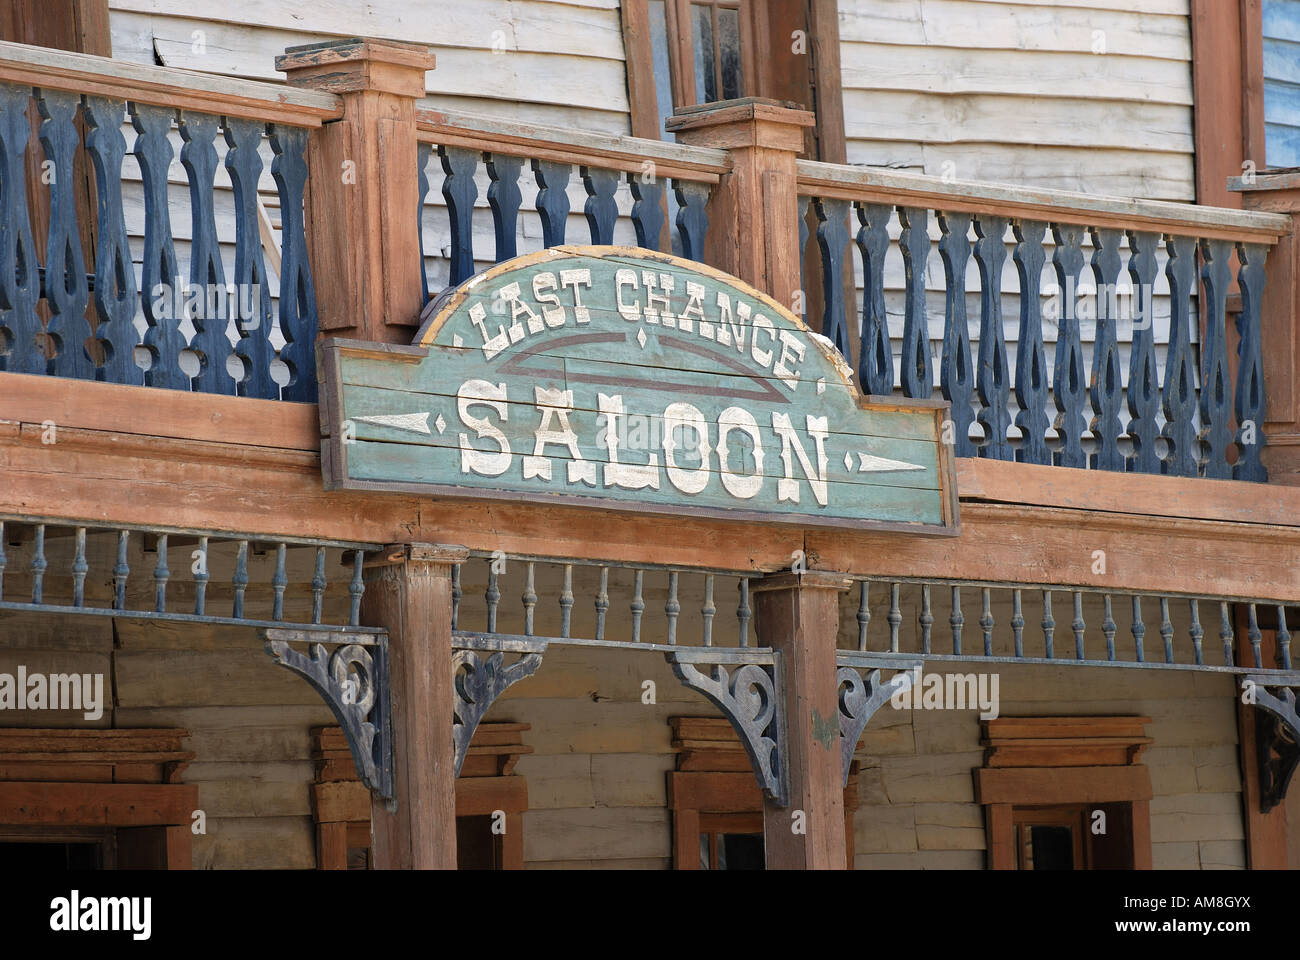 Last Chance Saloon in an old American Western style town - Stock Image